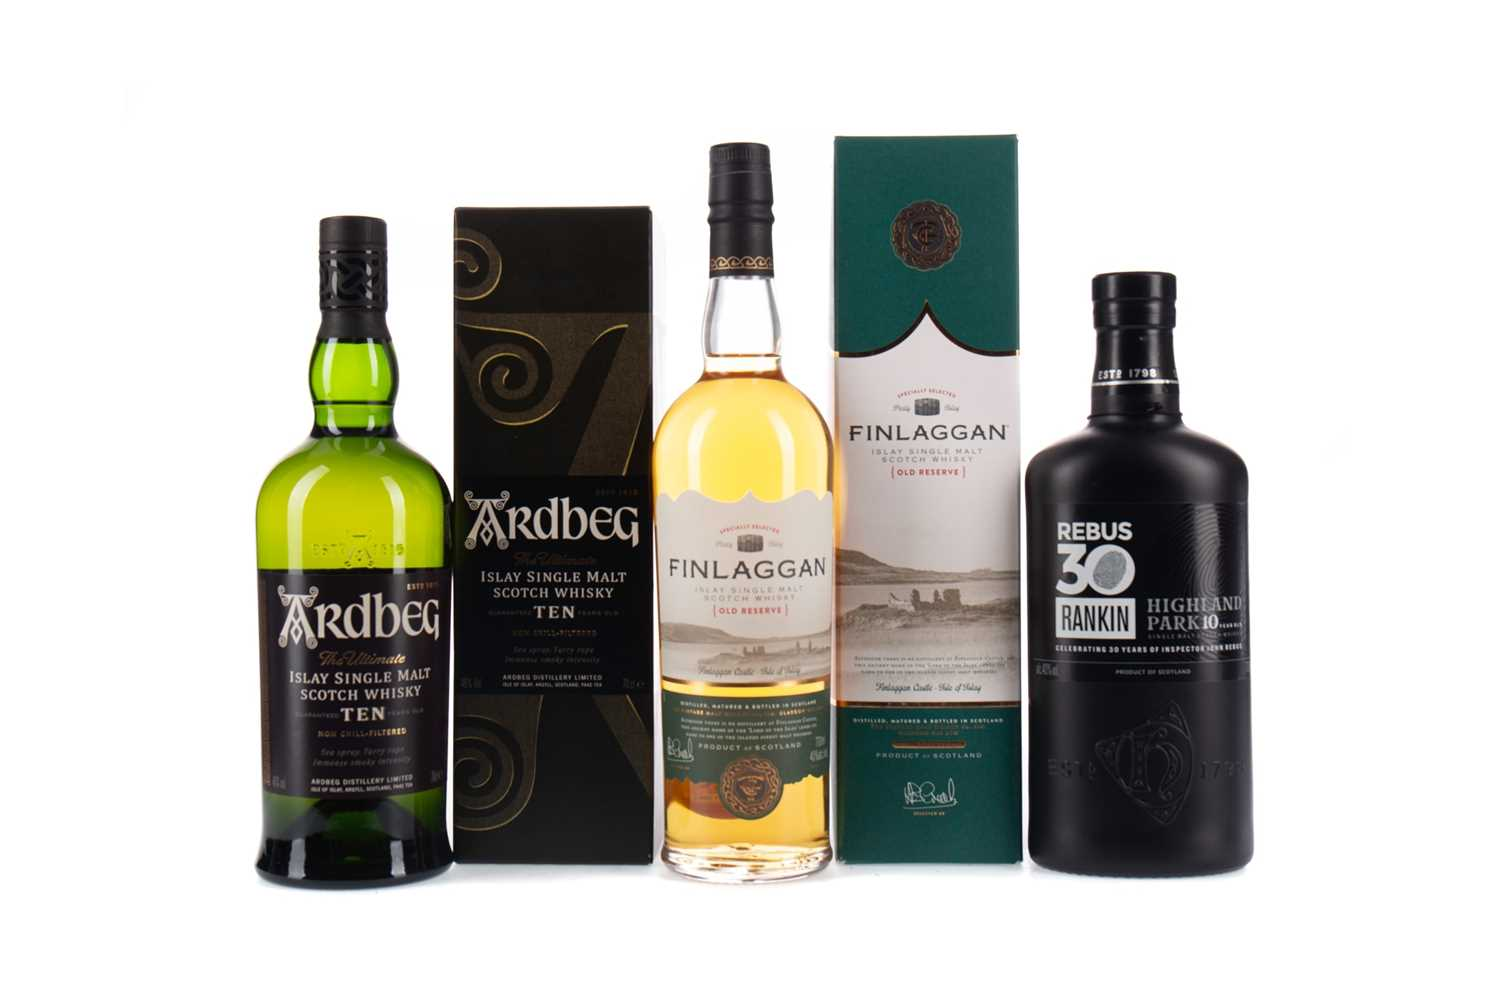 Lot 39 - HIGHLAND PARK REBUS 30 AGED 10 YEARS, ARDBEG 10 YEARS OLD, AND FINLAGGAN OLD RESERVE